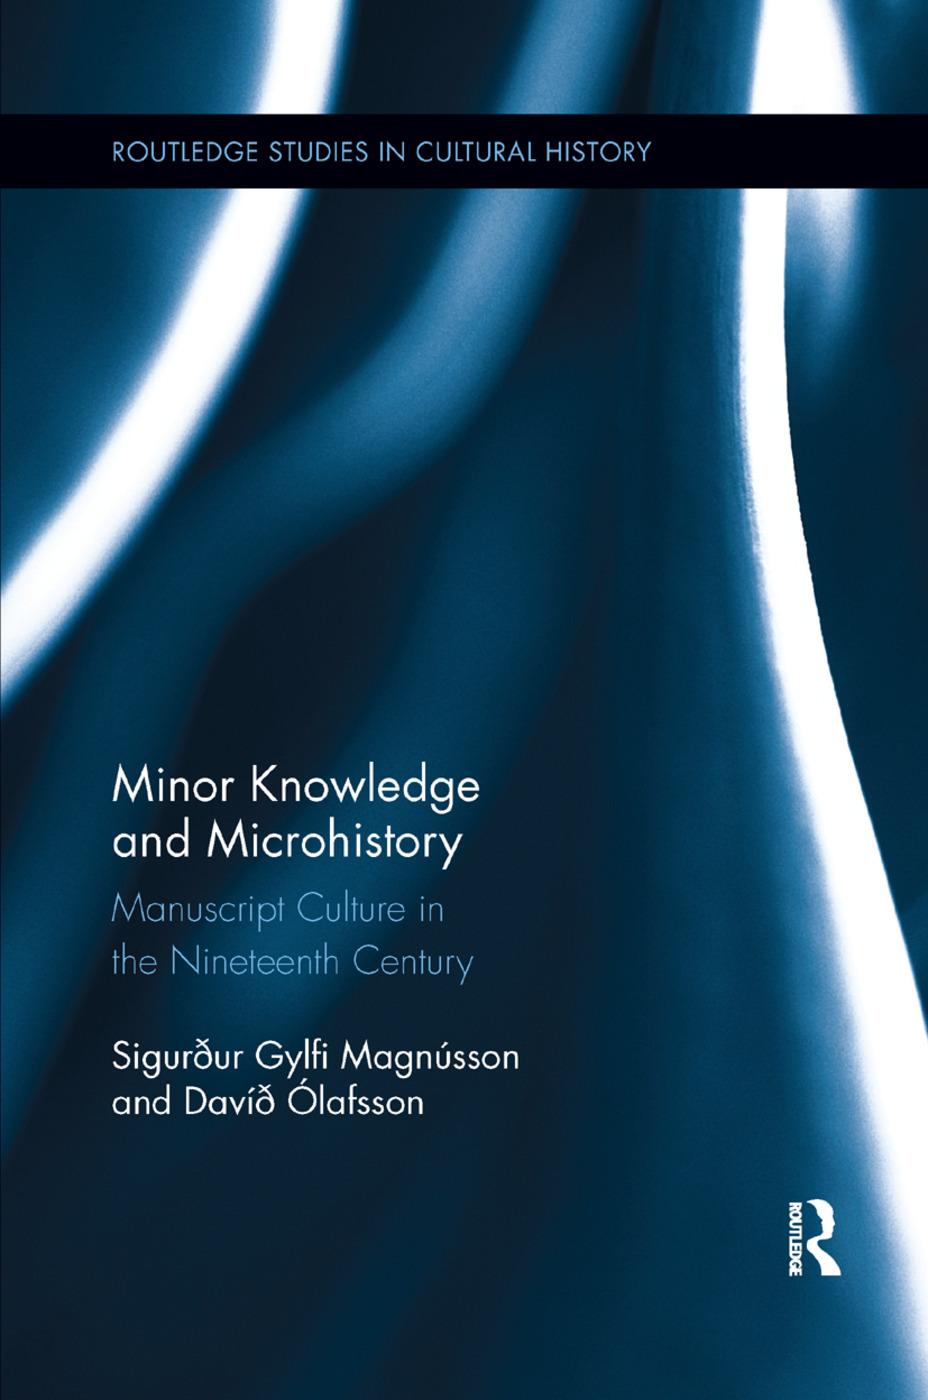 Minor Knowledge and Microhistory